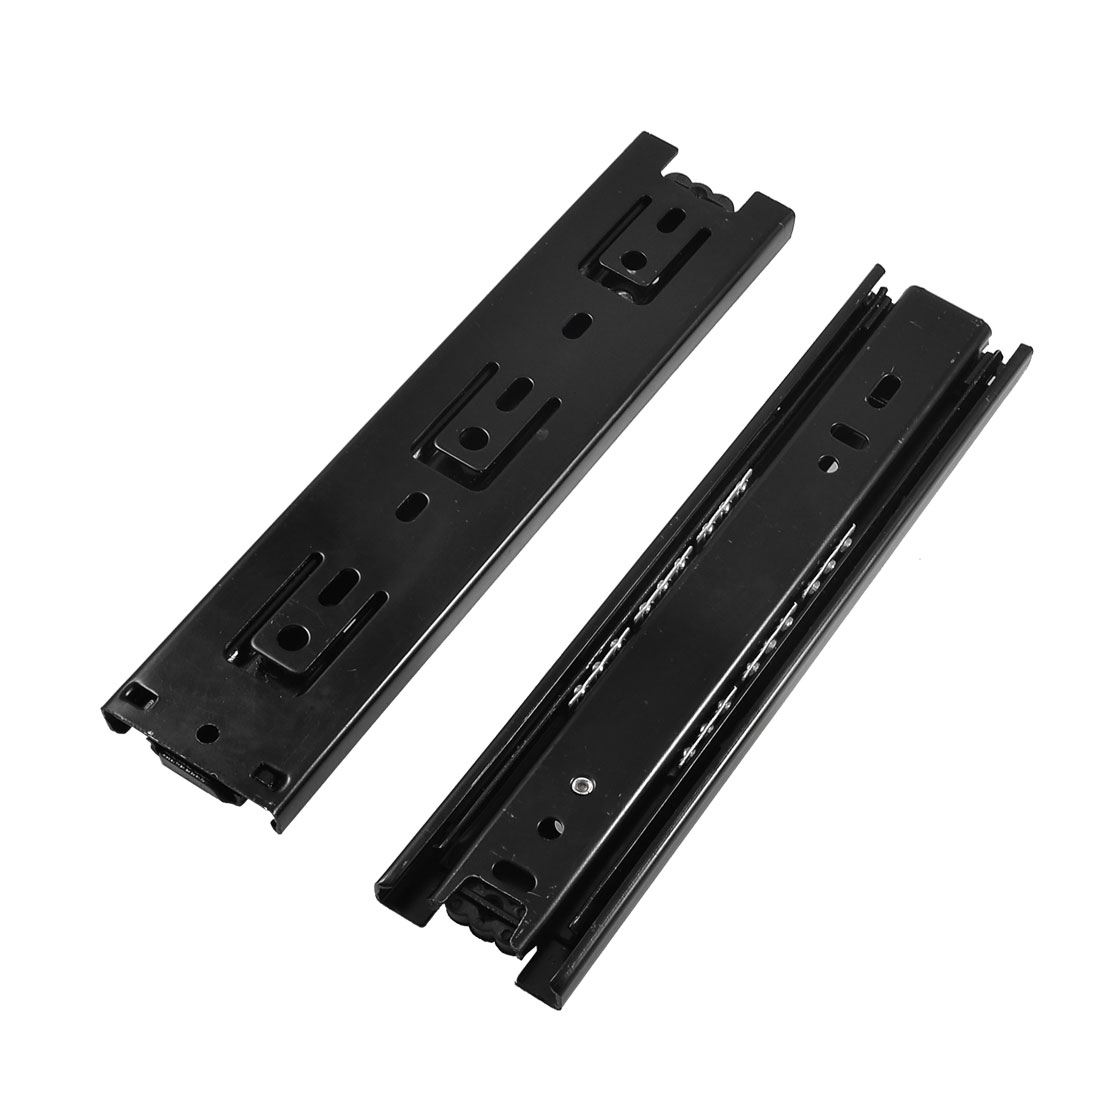 "2 Pcs Black Metal 3 Sections Ball Bearing Drawer Slide 8"" Length"